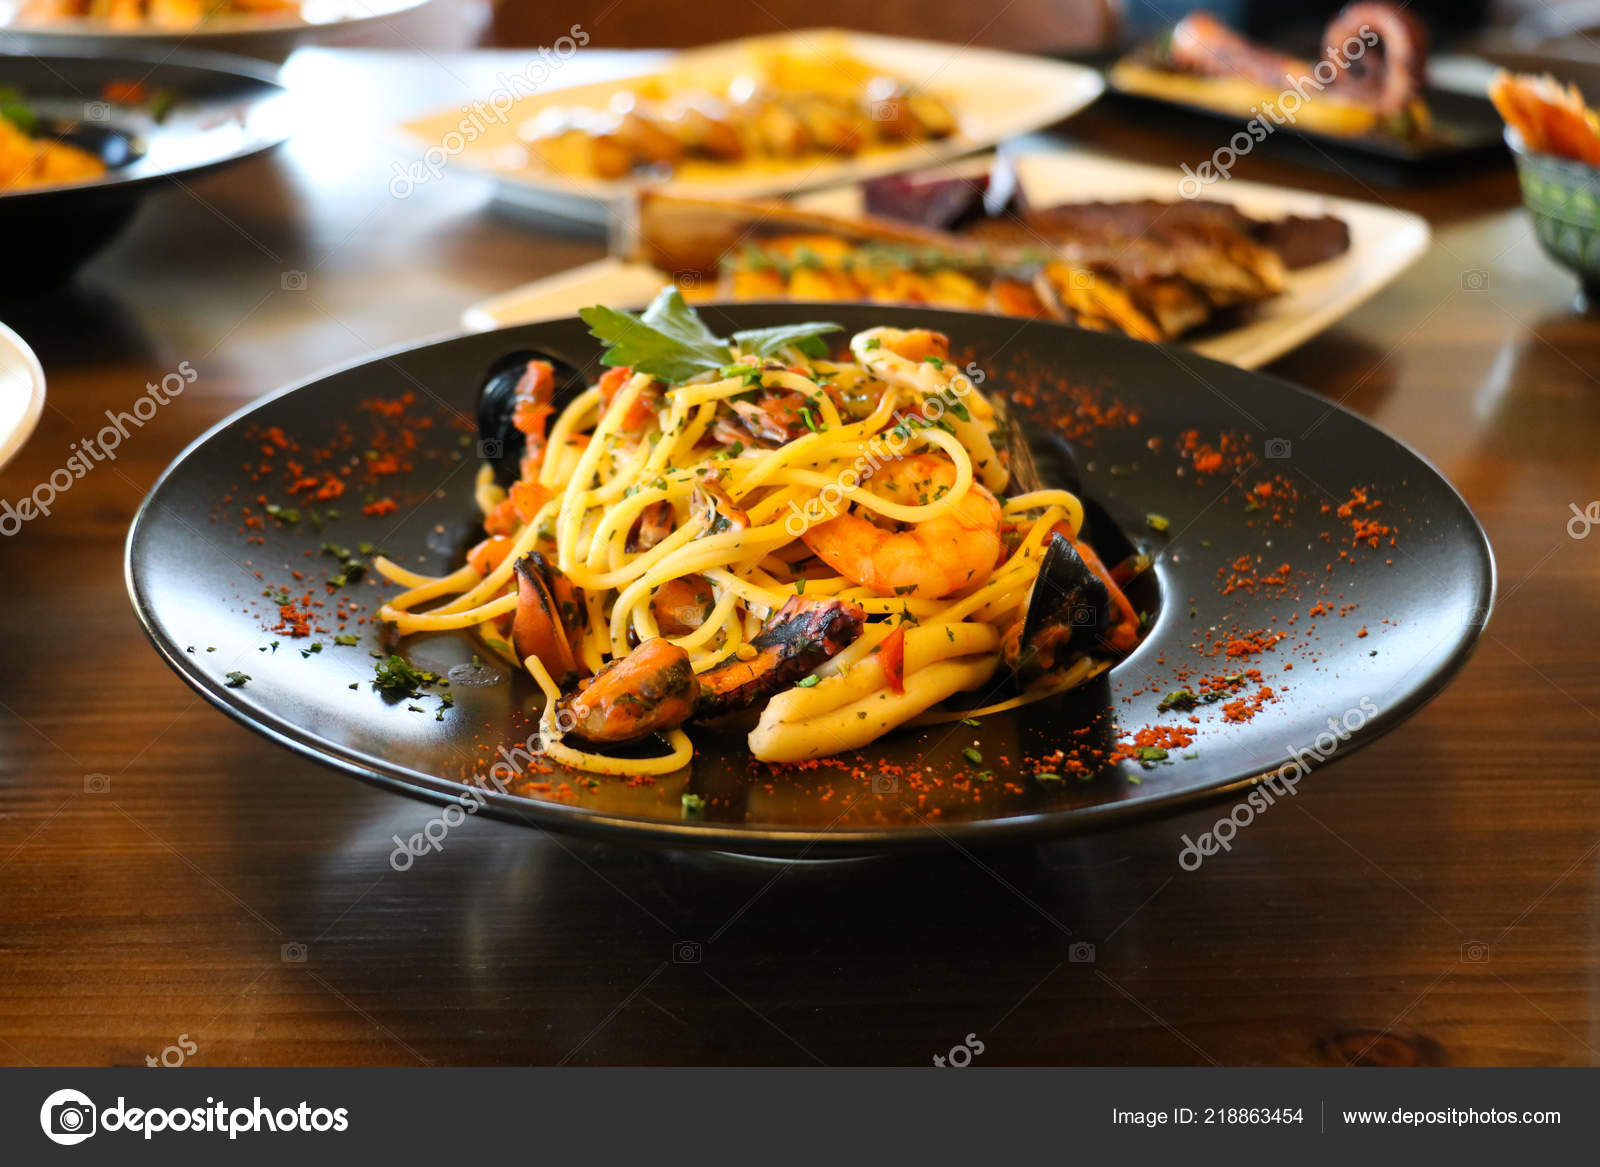 Healthy Food Concept Spaghetti Shrimps Prawns Mussels Parsley Black Plate Stock Photo Image By C Viperagp 218863454